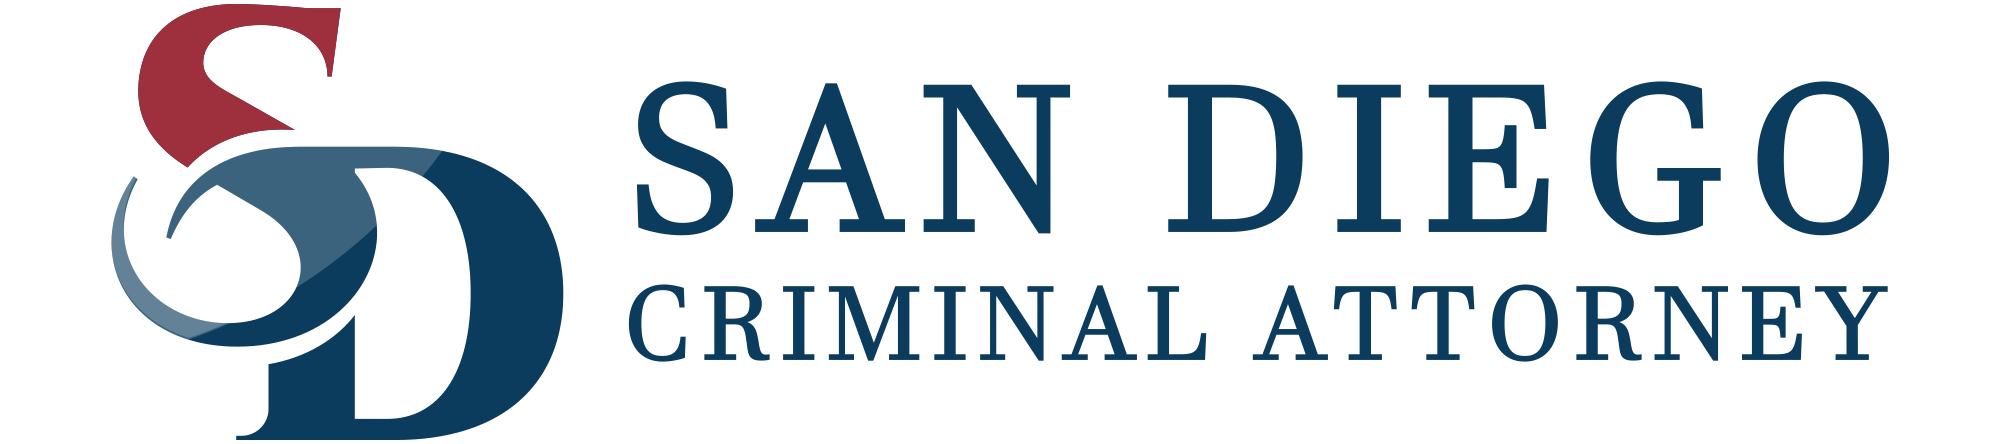 Vista Criminal Attorney - Criminal Lawyer Vista | San Diego Criminal